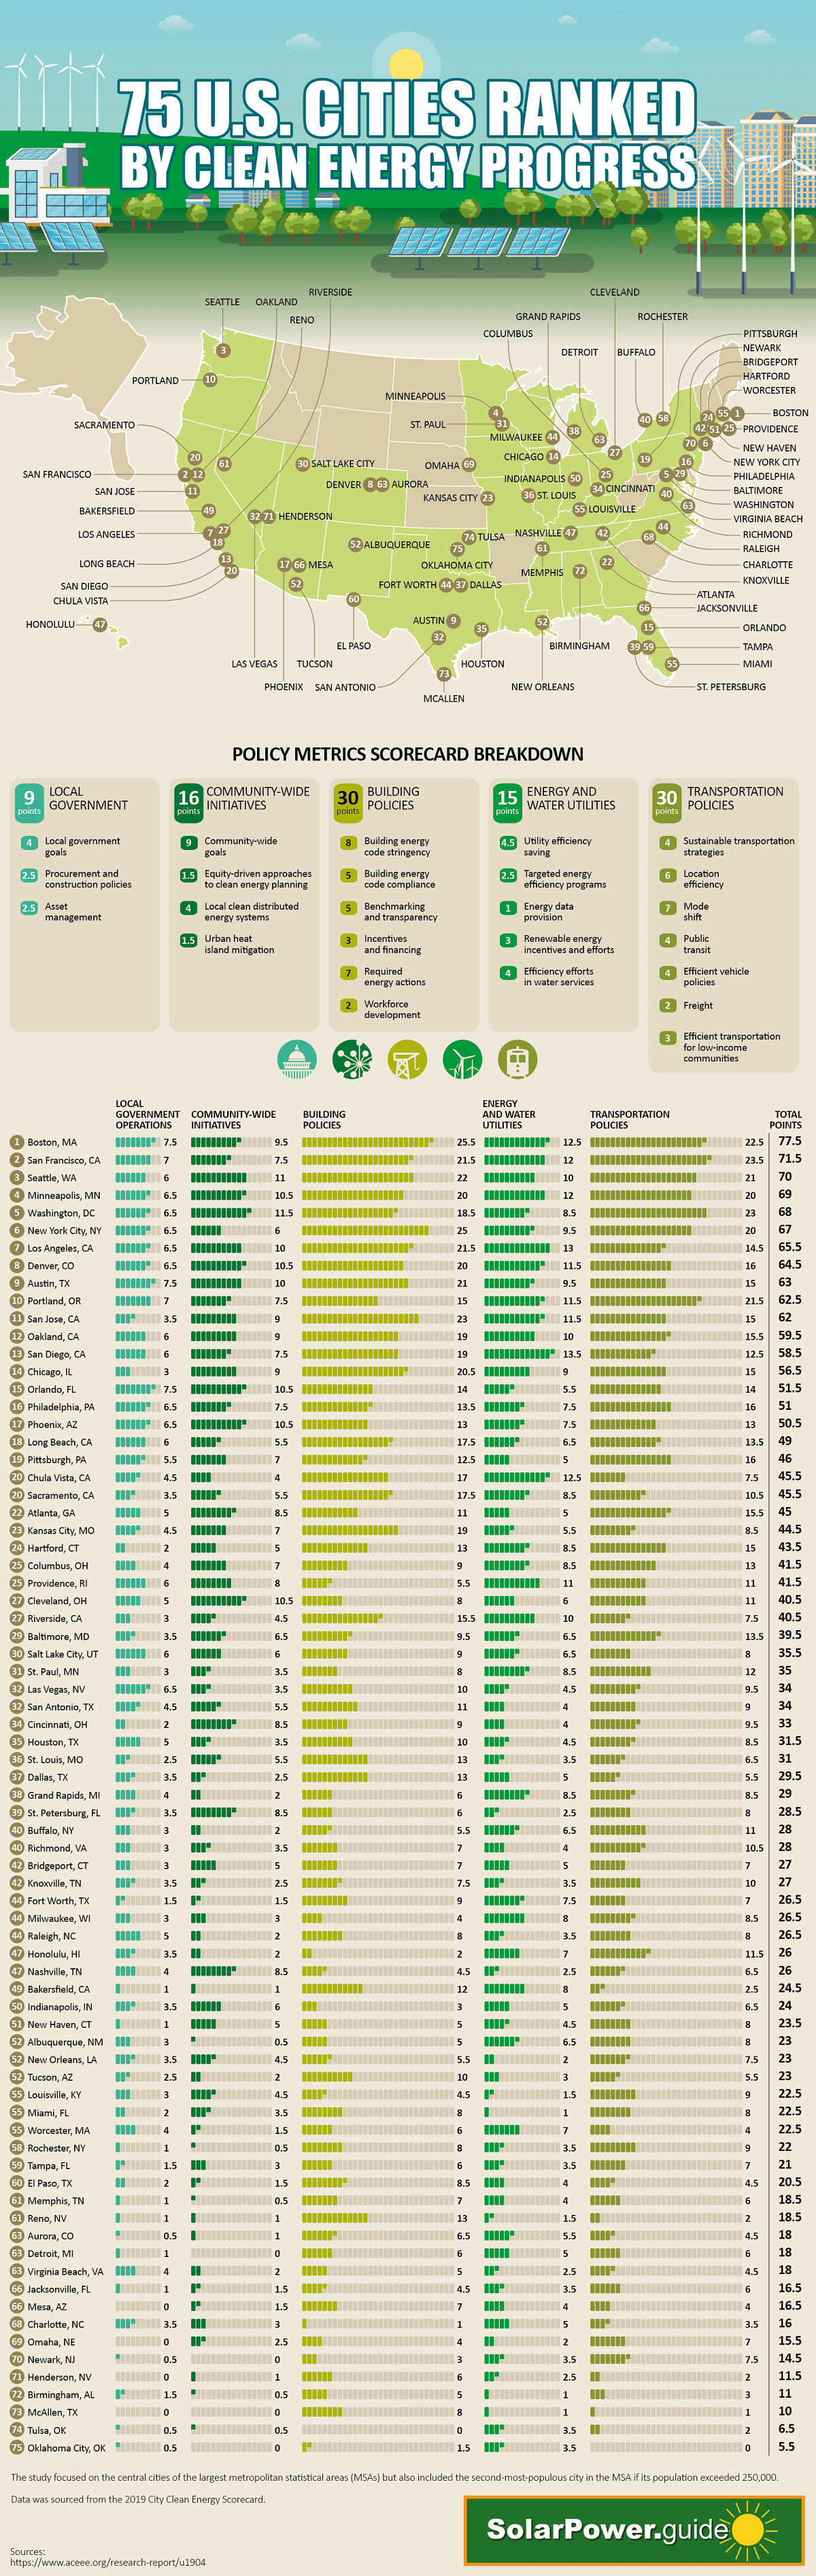 75-us-cities-ranked-by-clean-energy-progress-infographic